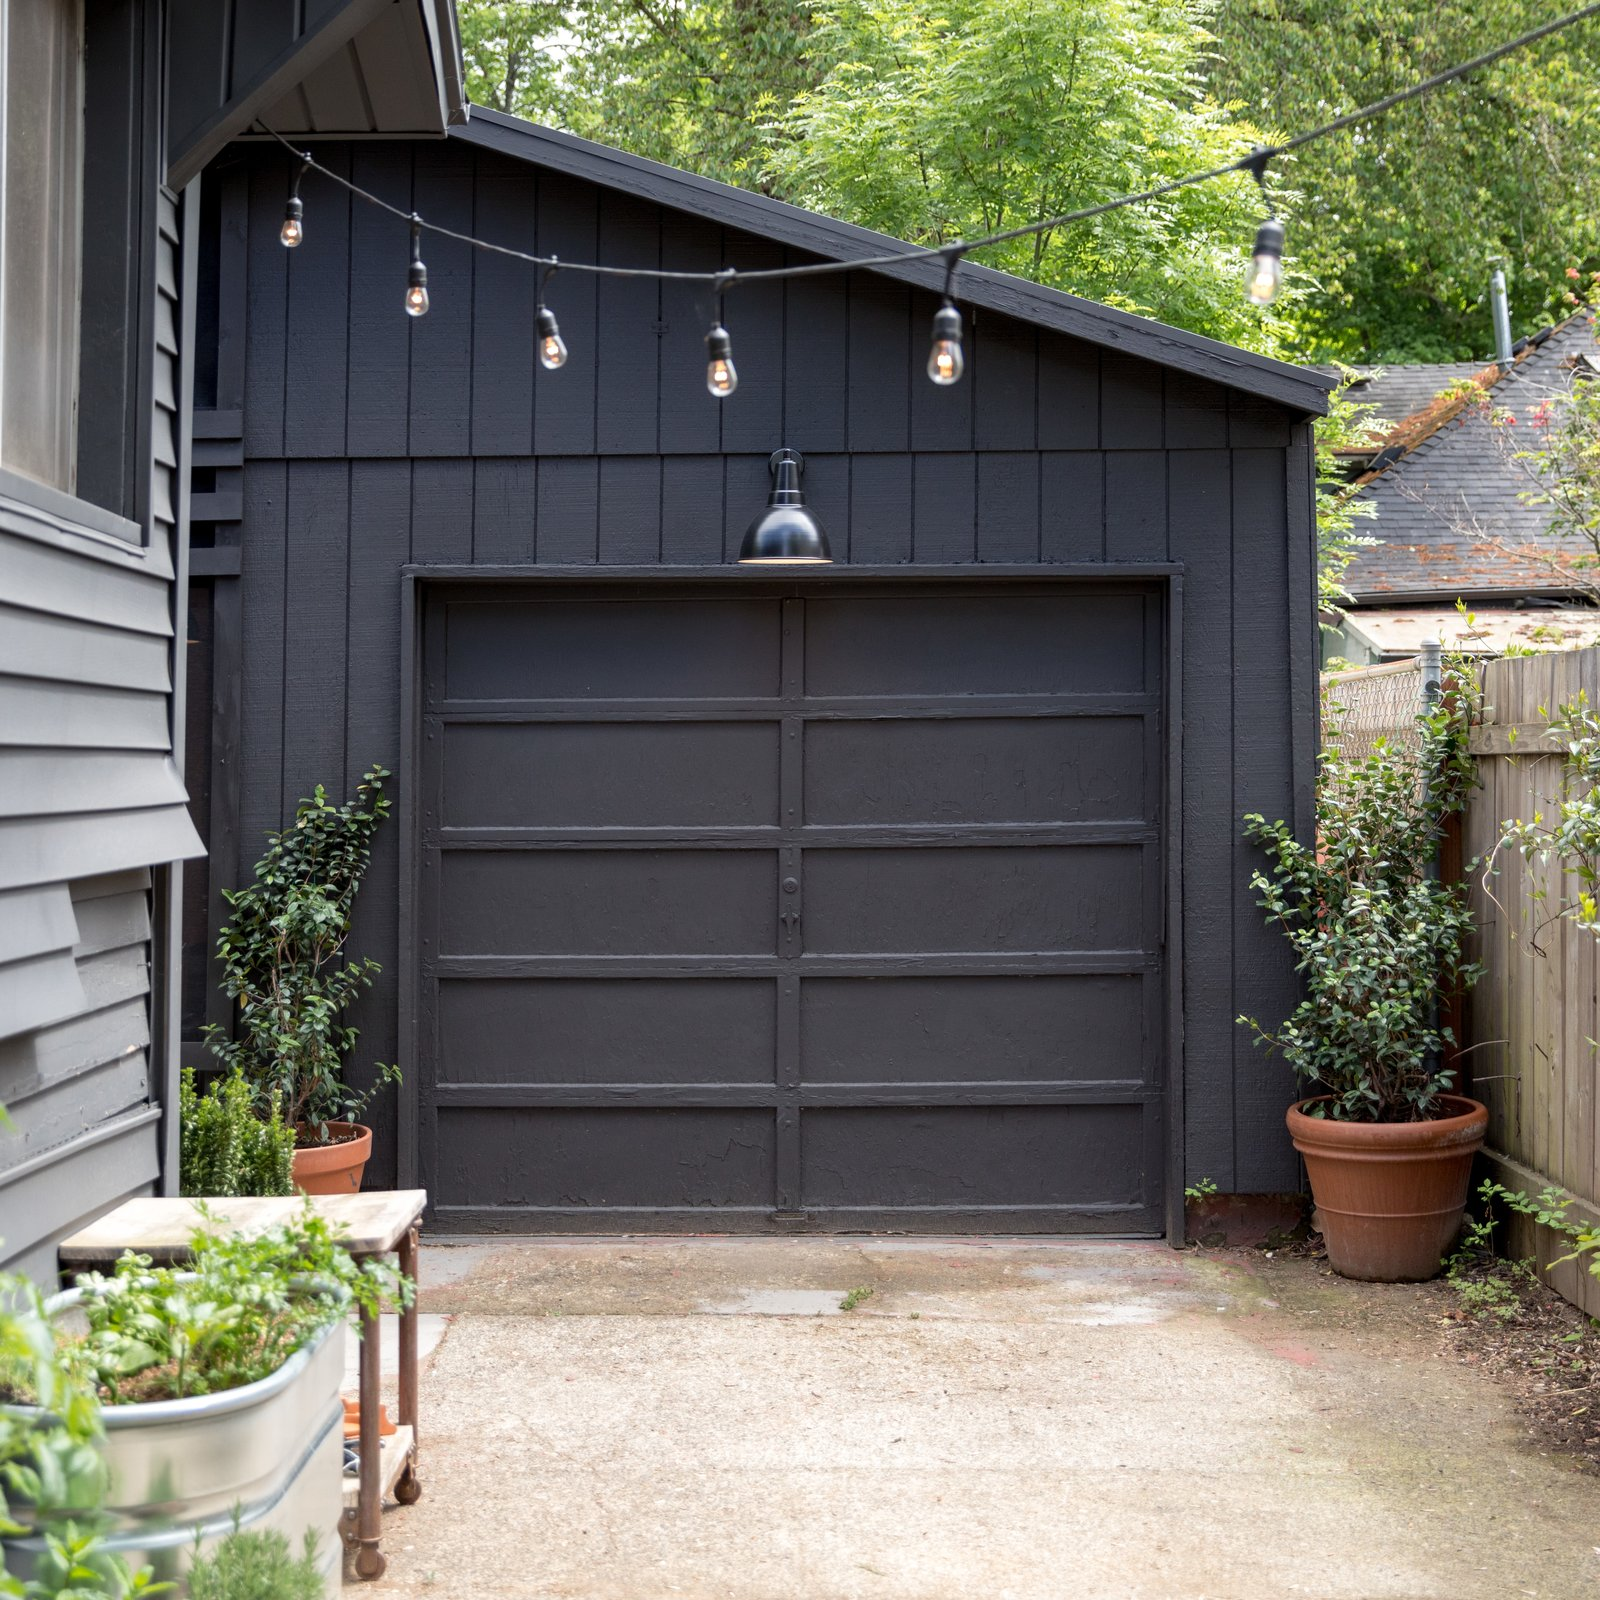 54 Cool Garage Door Design Ideas Pictures: Photo 11 Of 11 In Budget Breakdown: A Weekend DIY Turns A